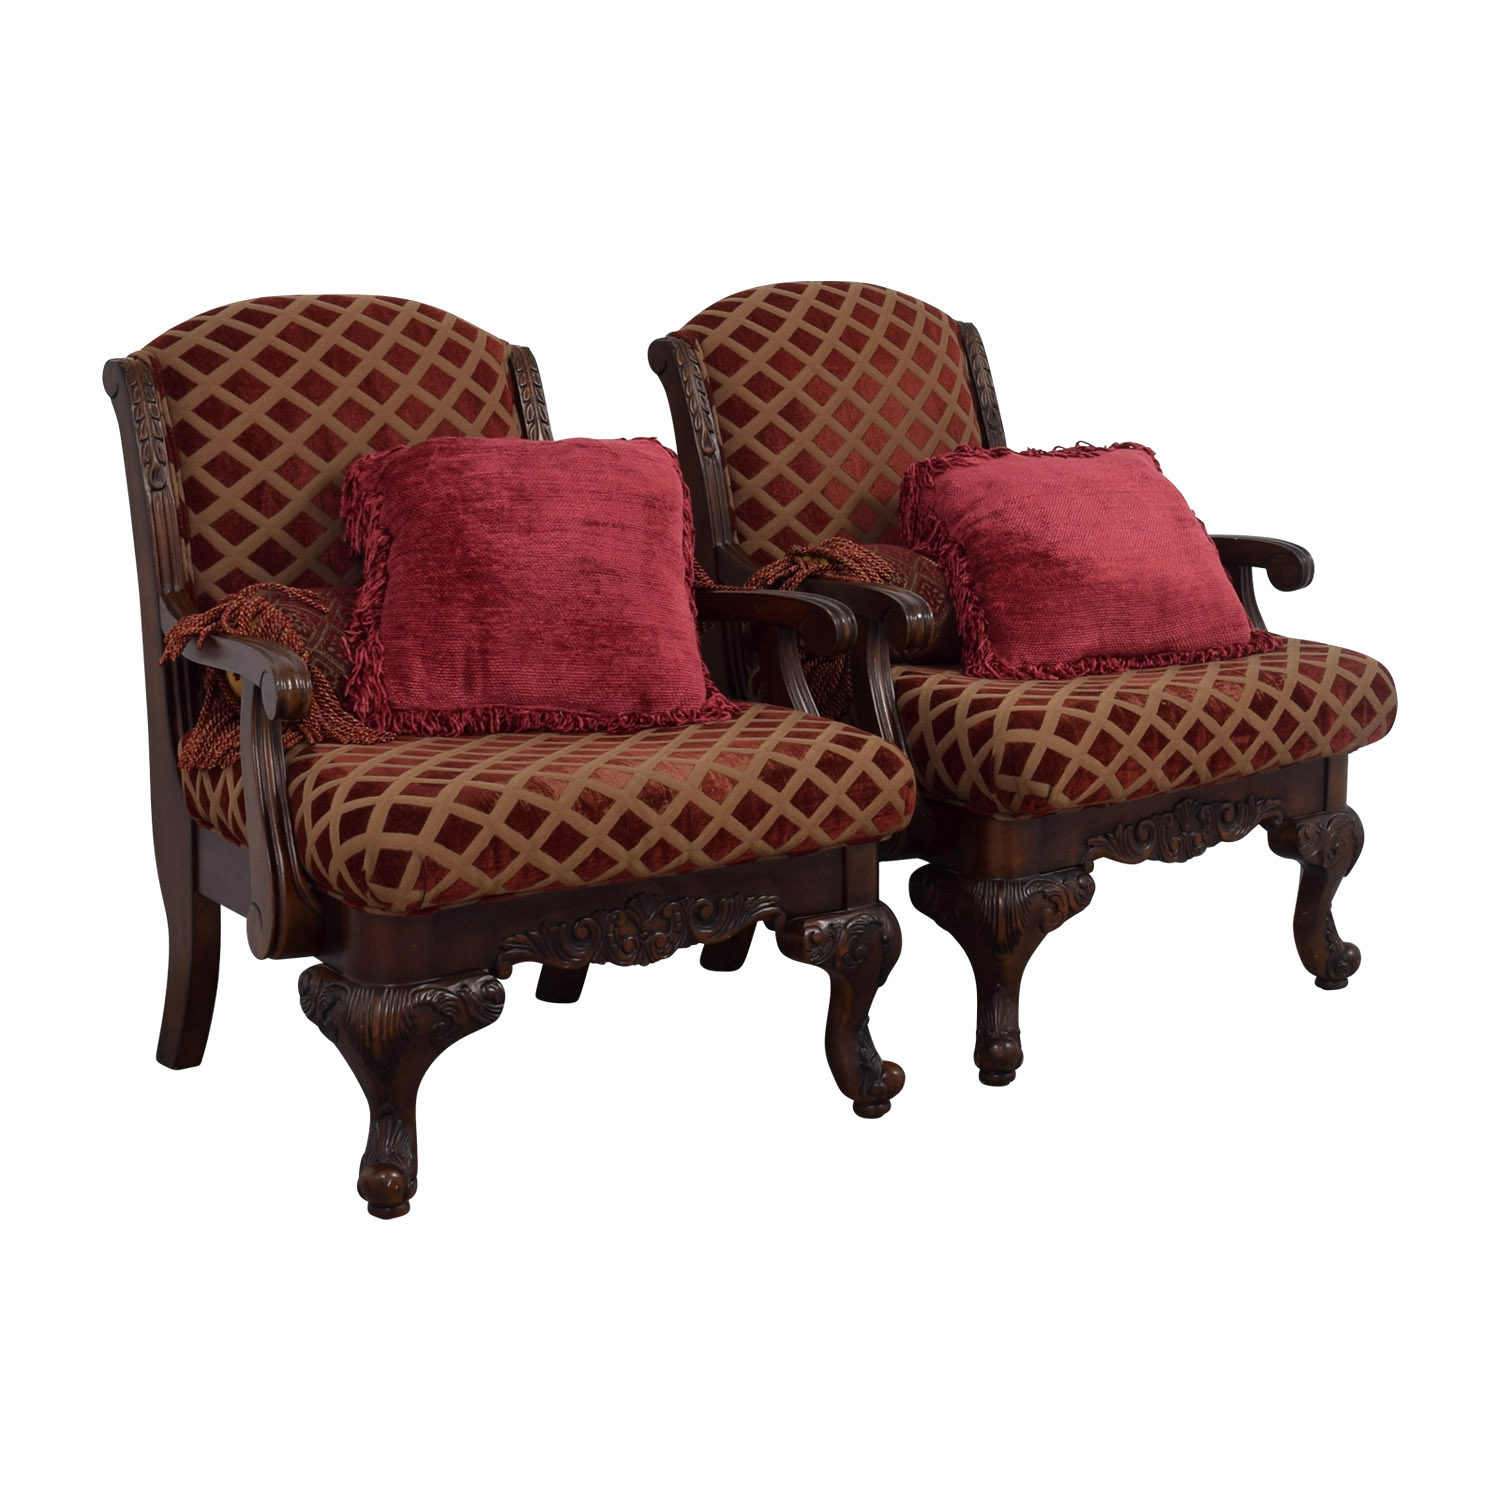 Gold Accent Chairs 55 Off Burgundy And Gold Accent Chairs With Toss